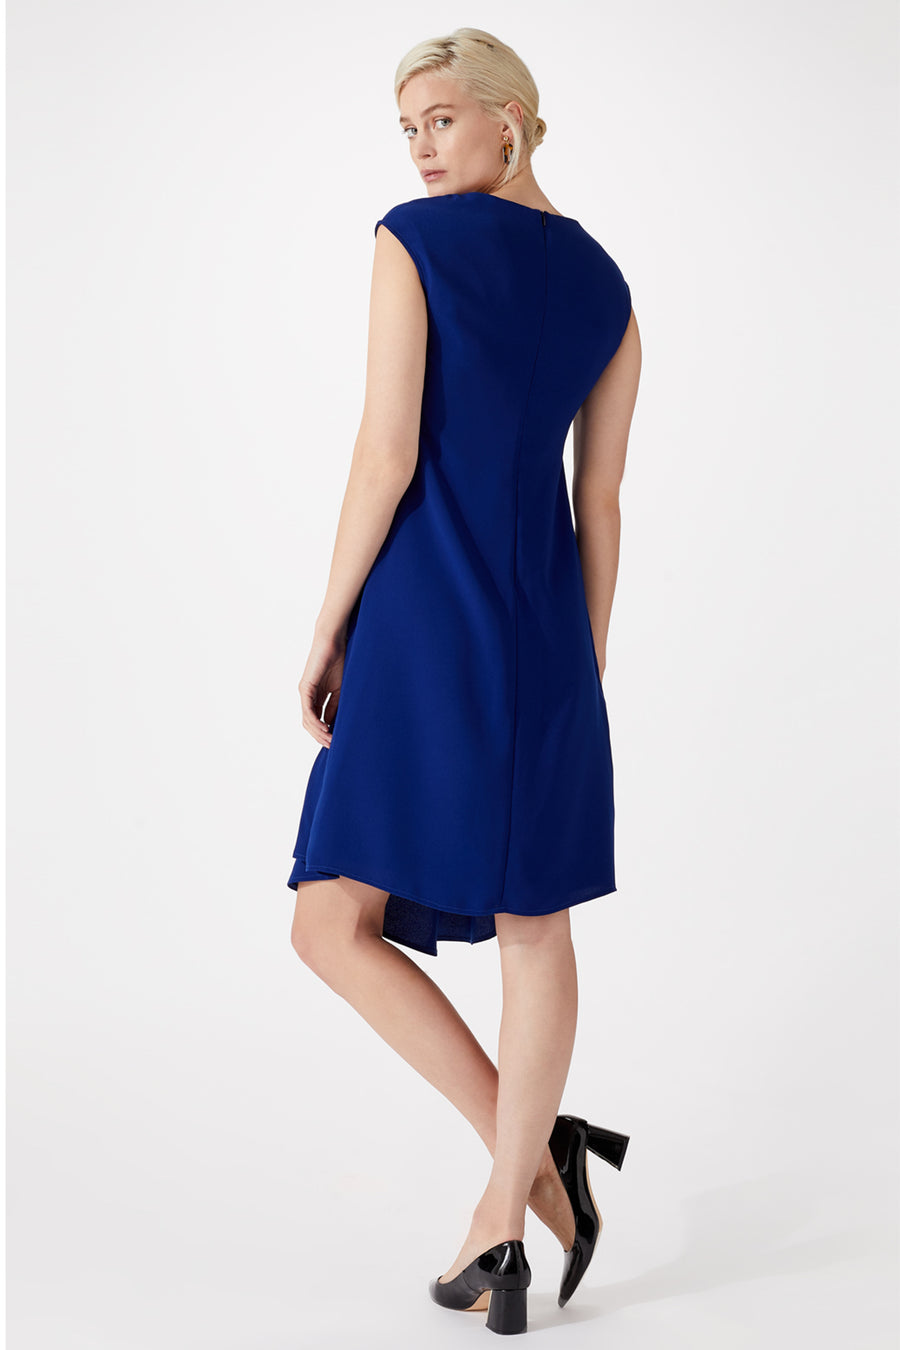 Arlington Cobalt Dress